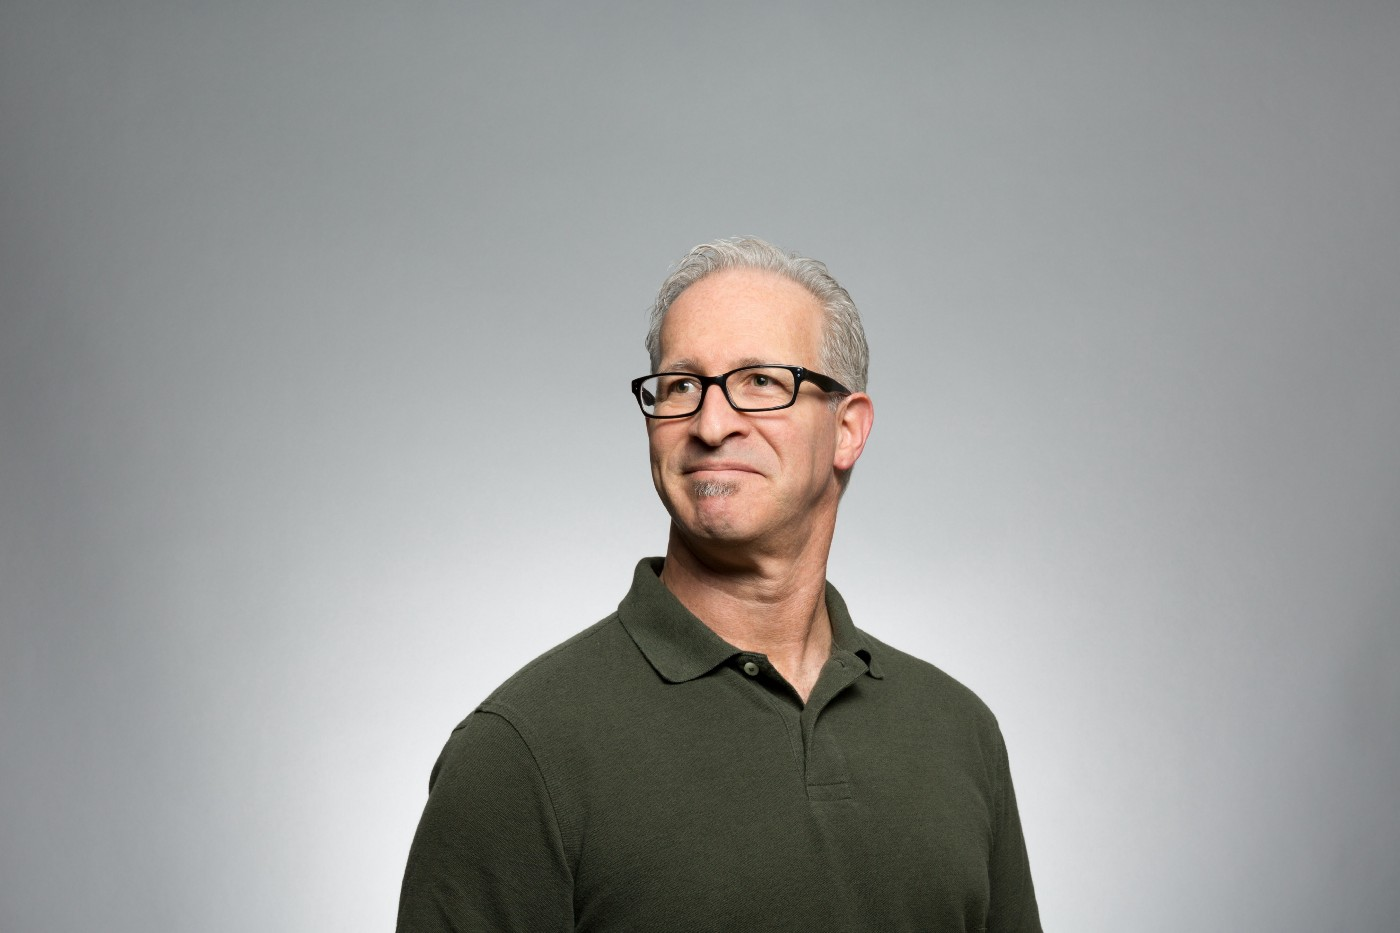 A head and shoulders shot of a white man with greying hair and glasses standing tall and looking somewhat proud of himself.